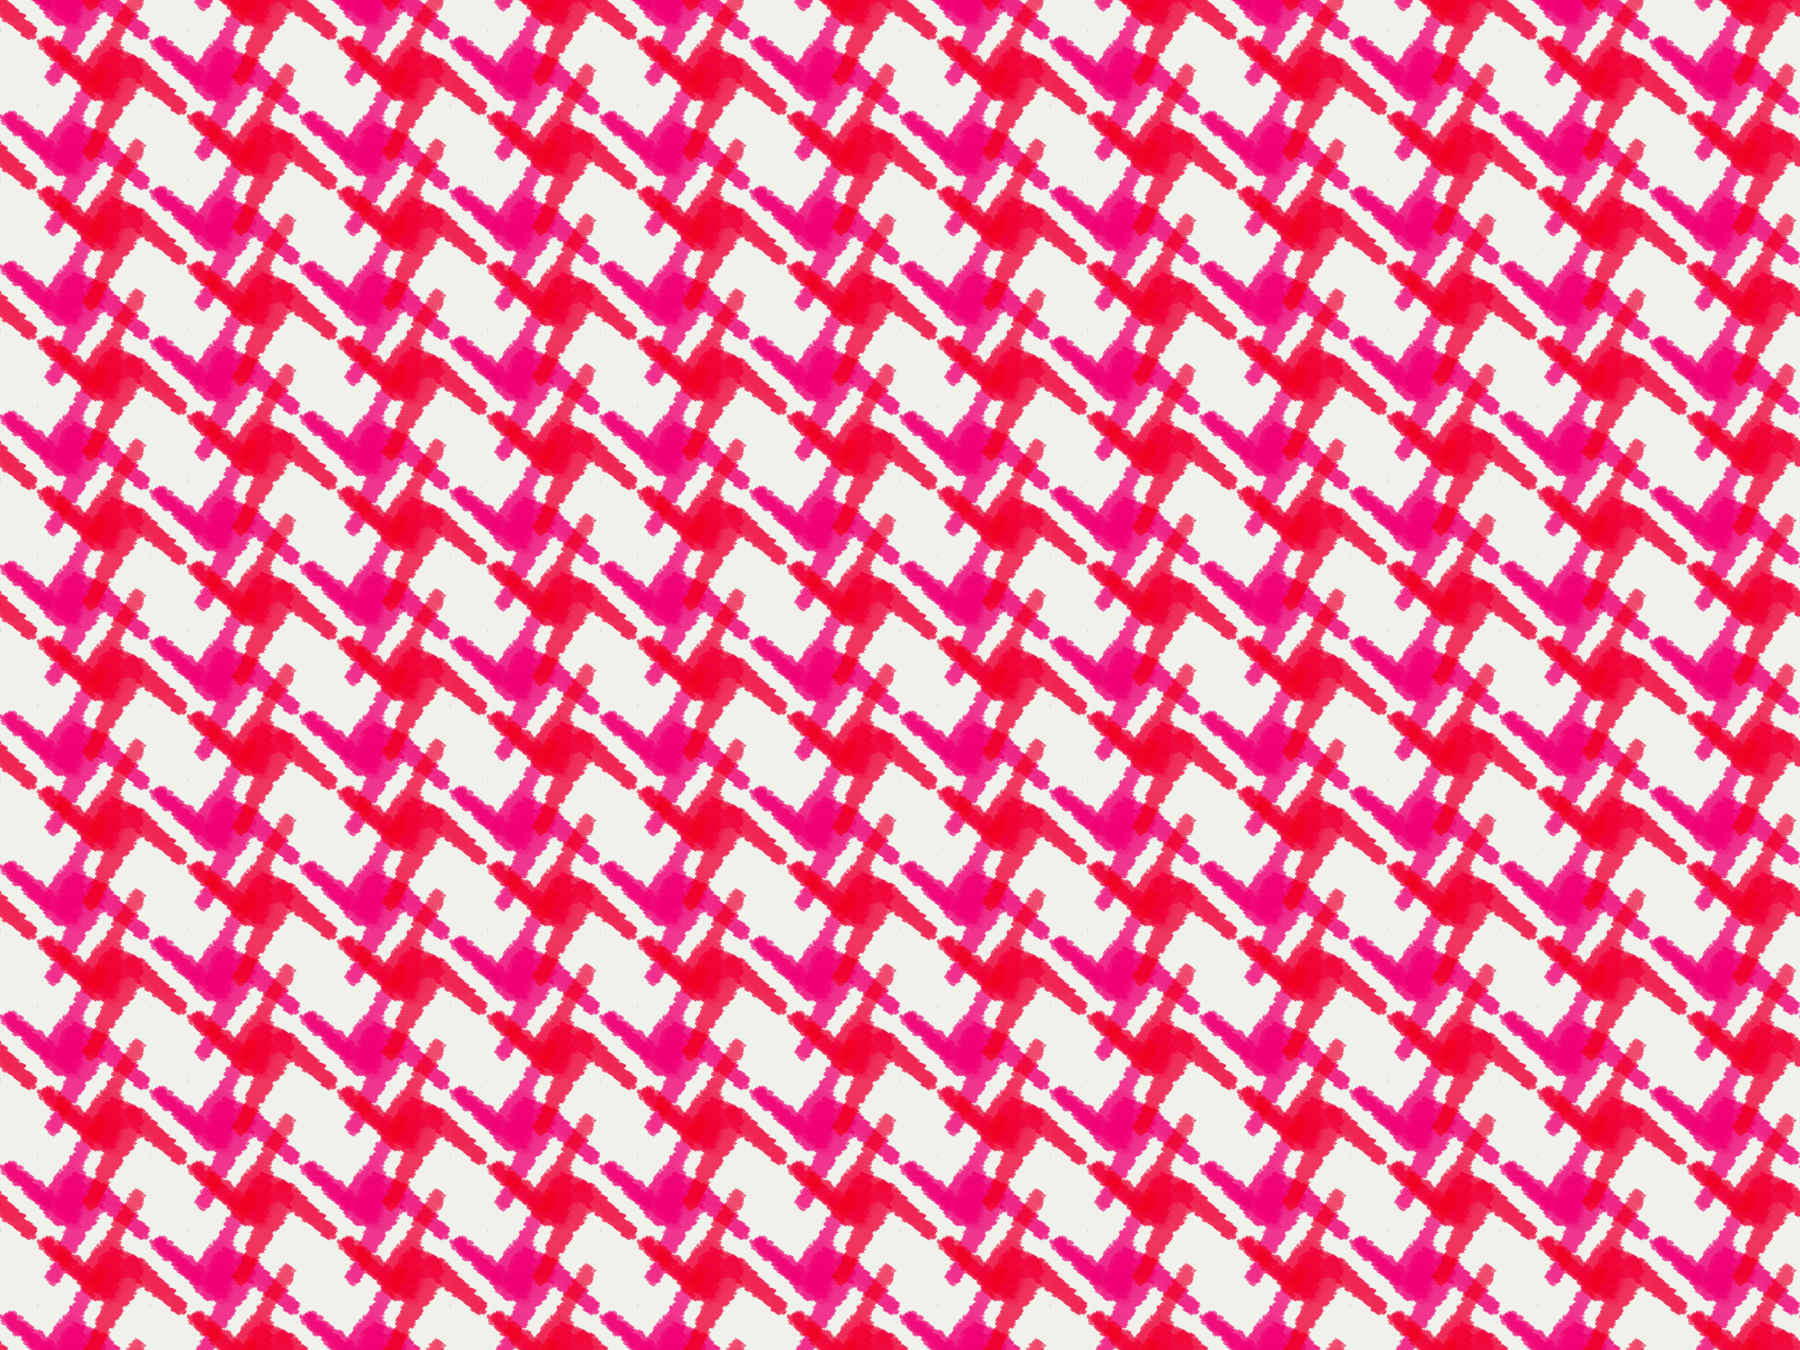 layered houndstooth